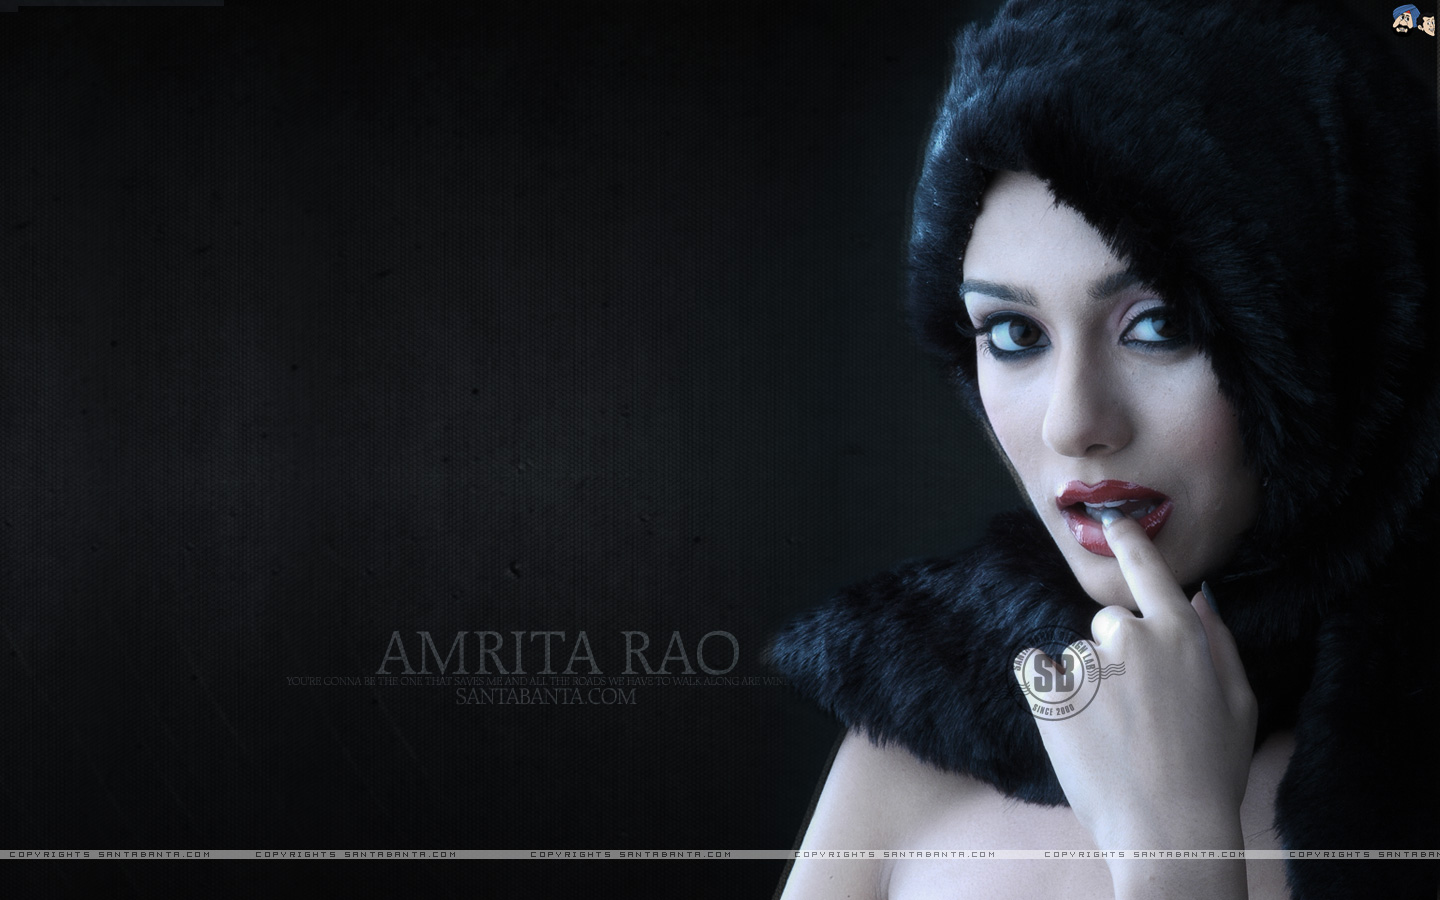 design software resources: amrita rao wallpapers